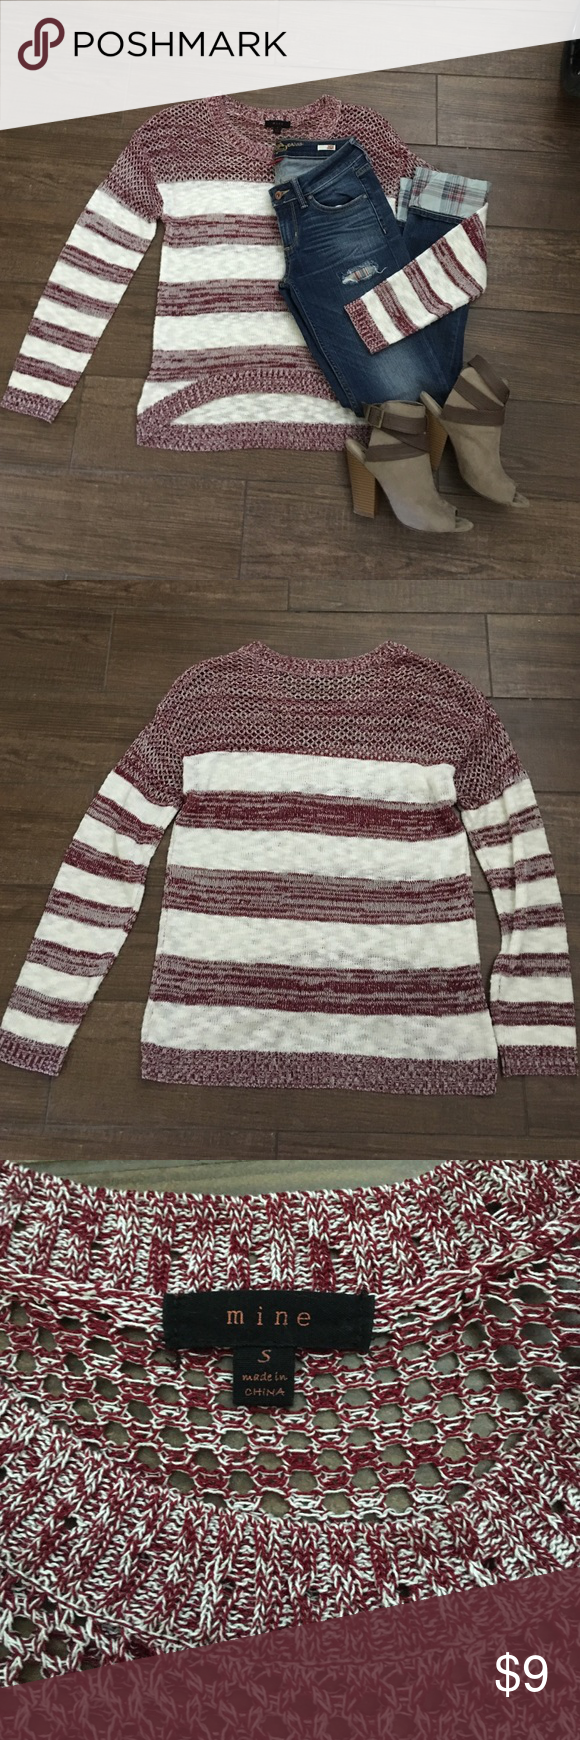 Mine maroon and white striped sweater small Brand Mine maroon and ...